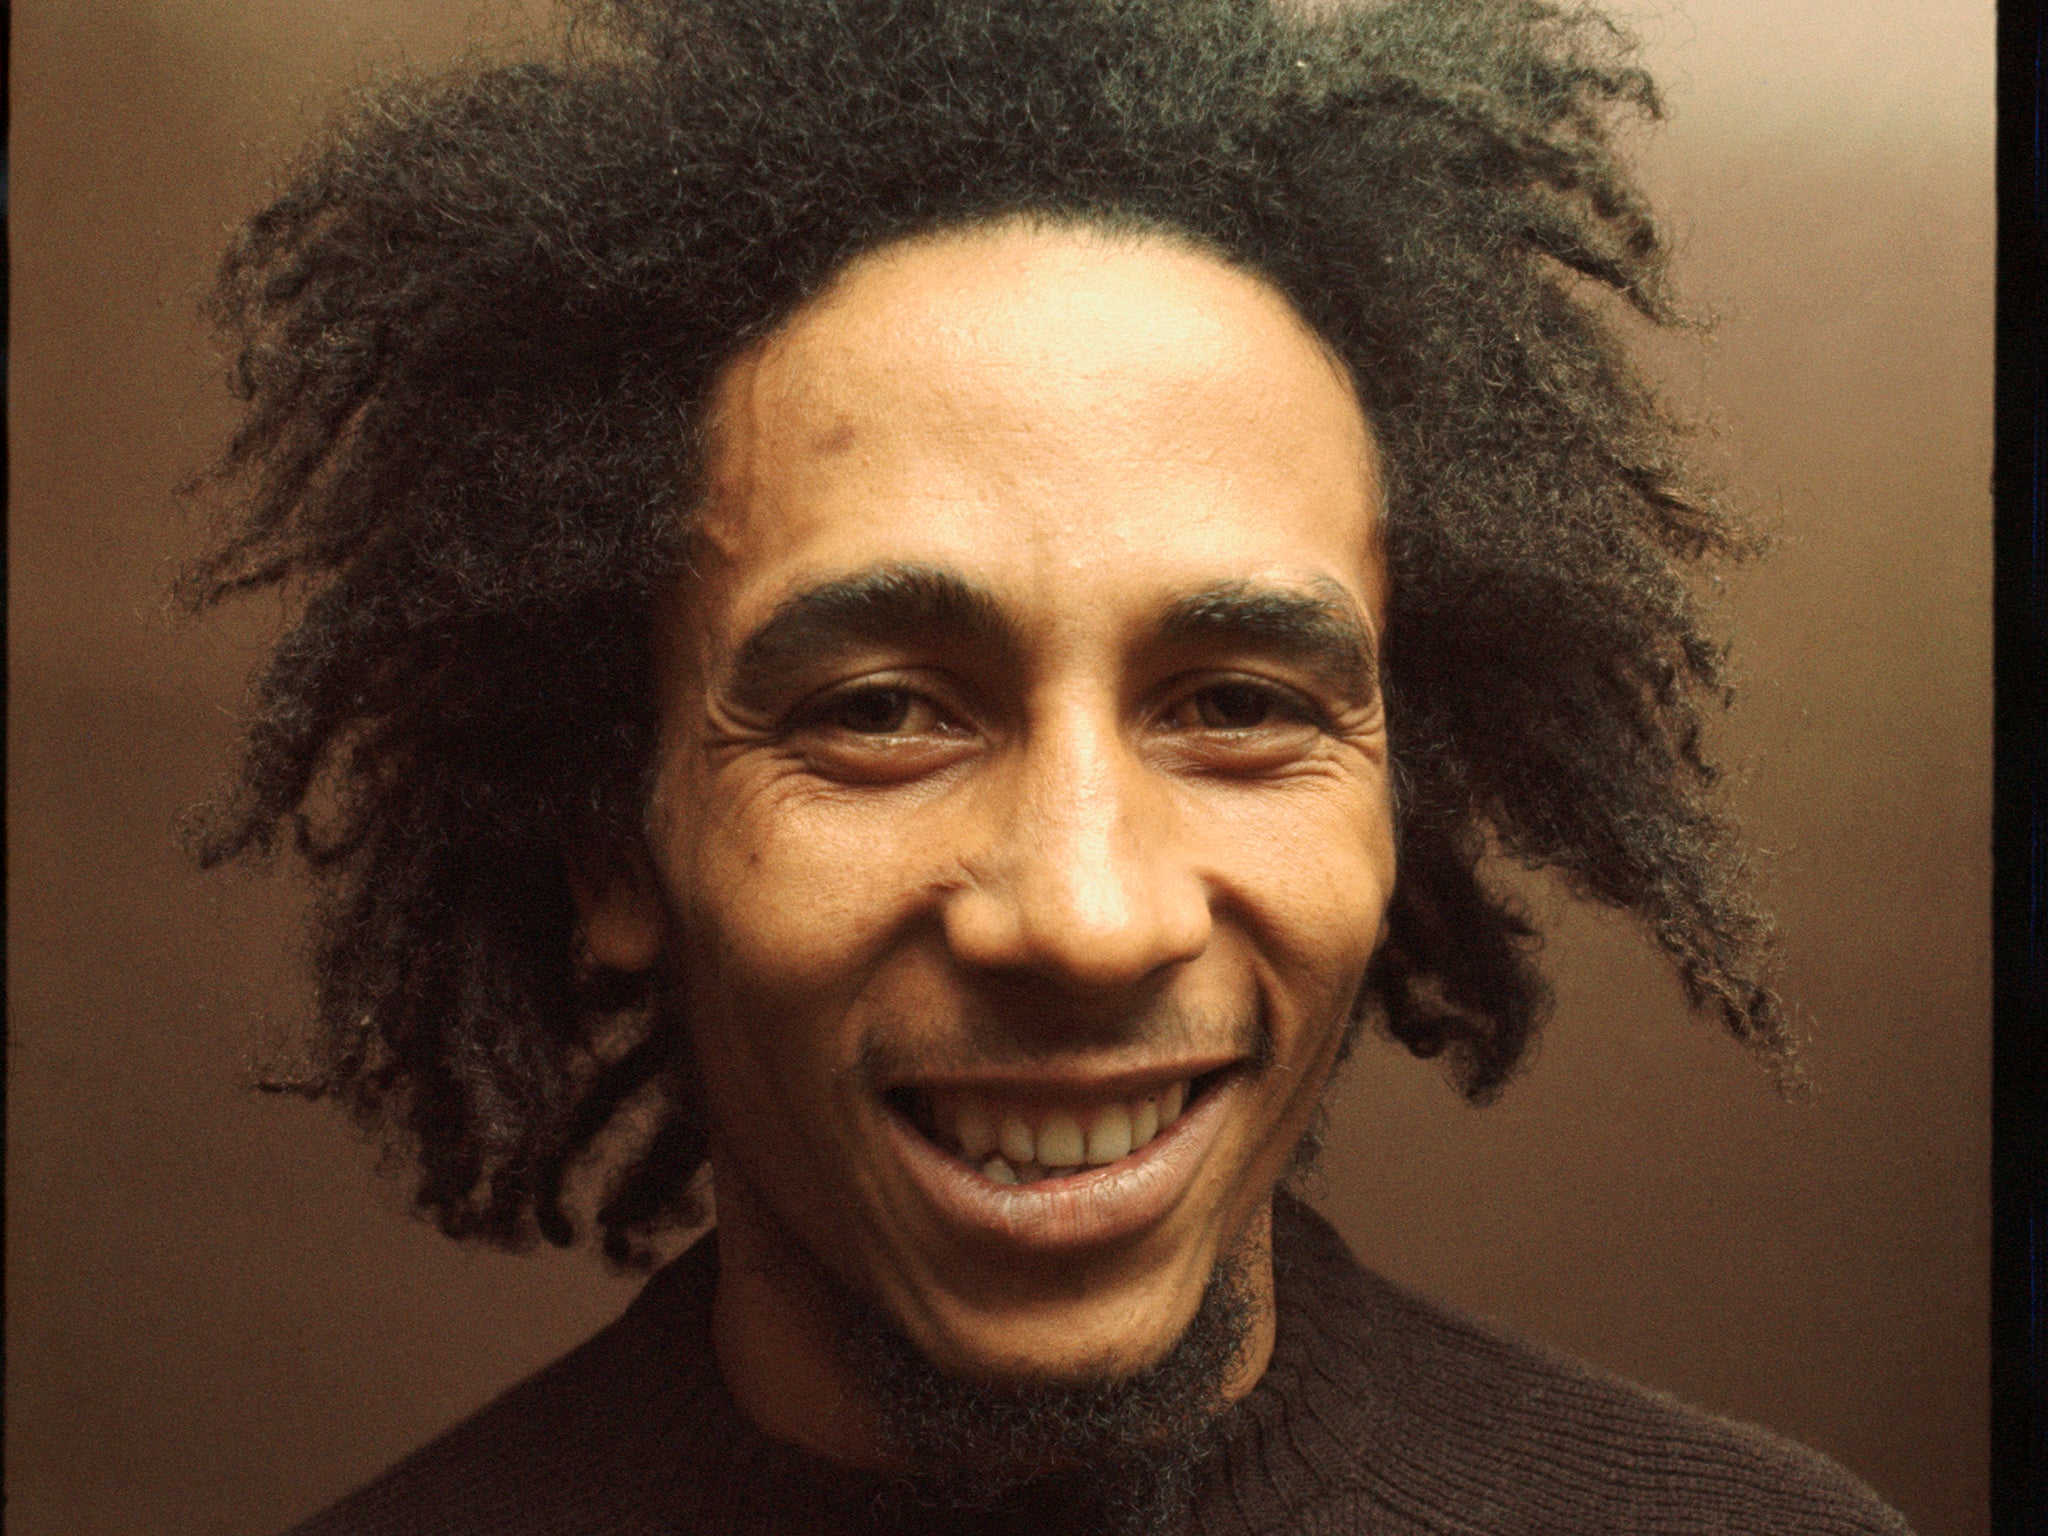 the life and music career of reggae legend bob marley A new species of marine spider that only emerges at low tide in australia has been named after the reggae music legend bob marley unlike other spiders, these intertidal species are truly marine.